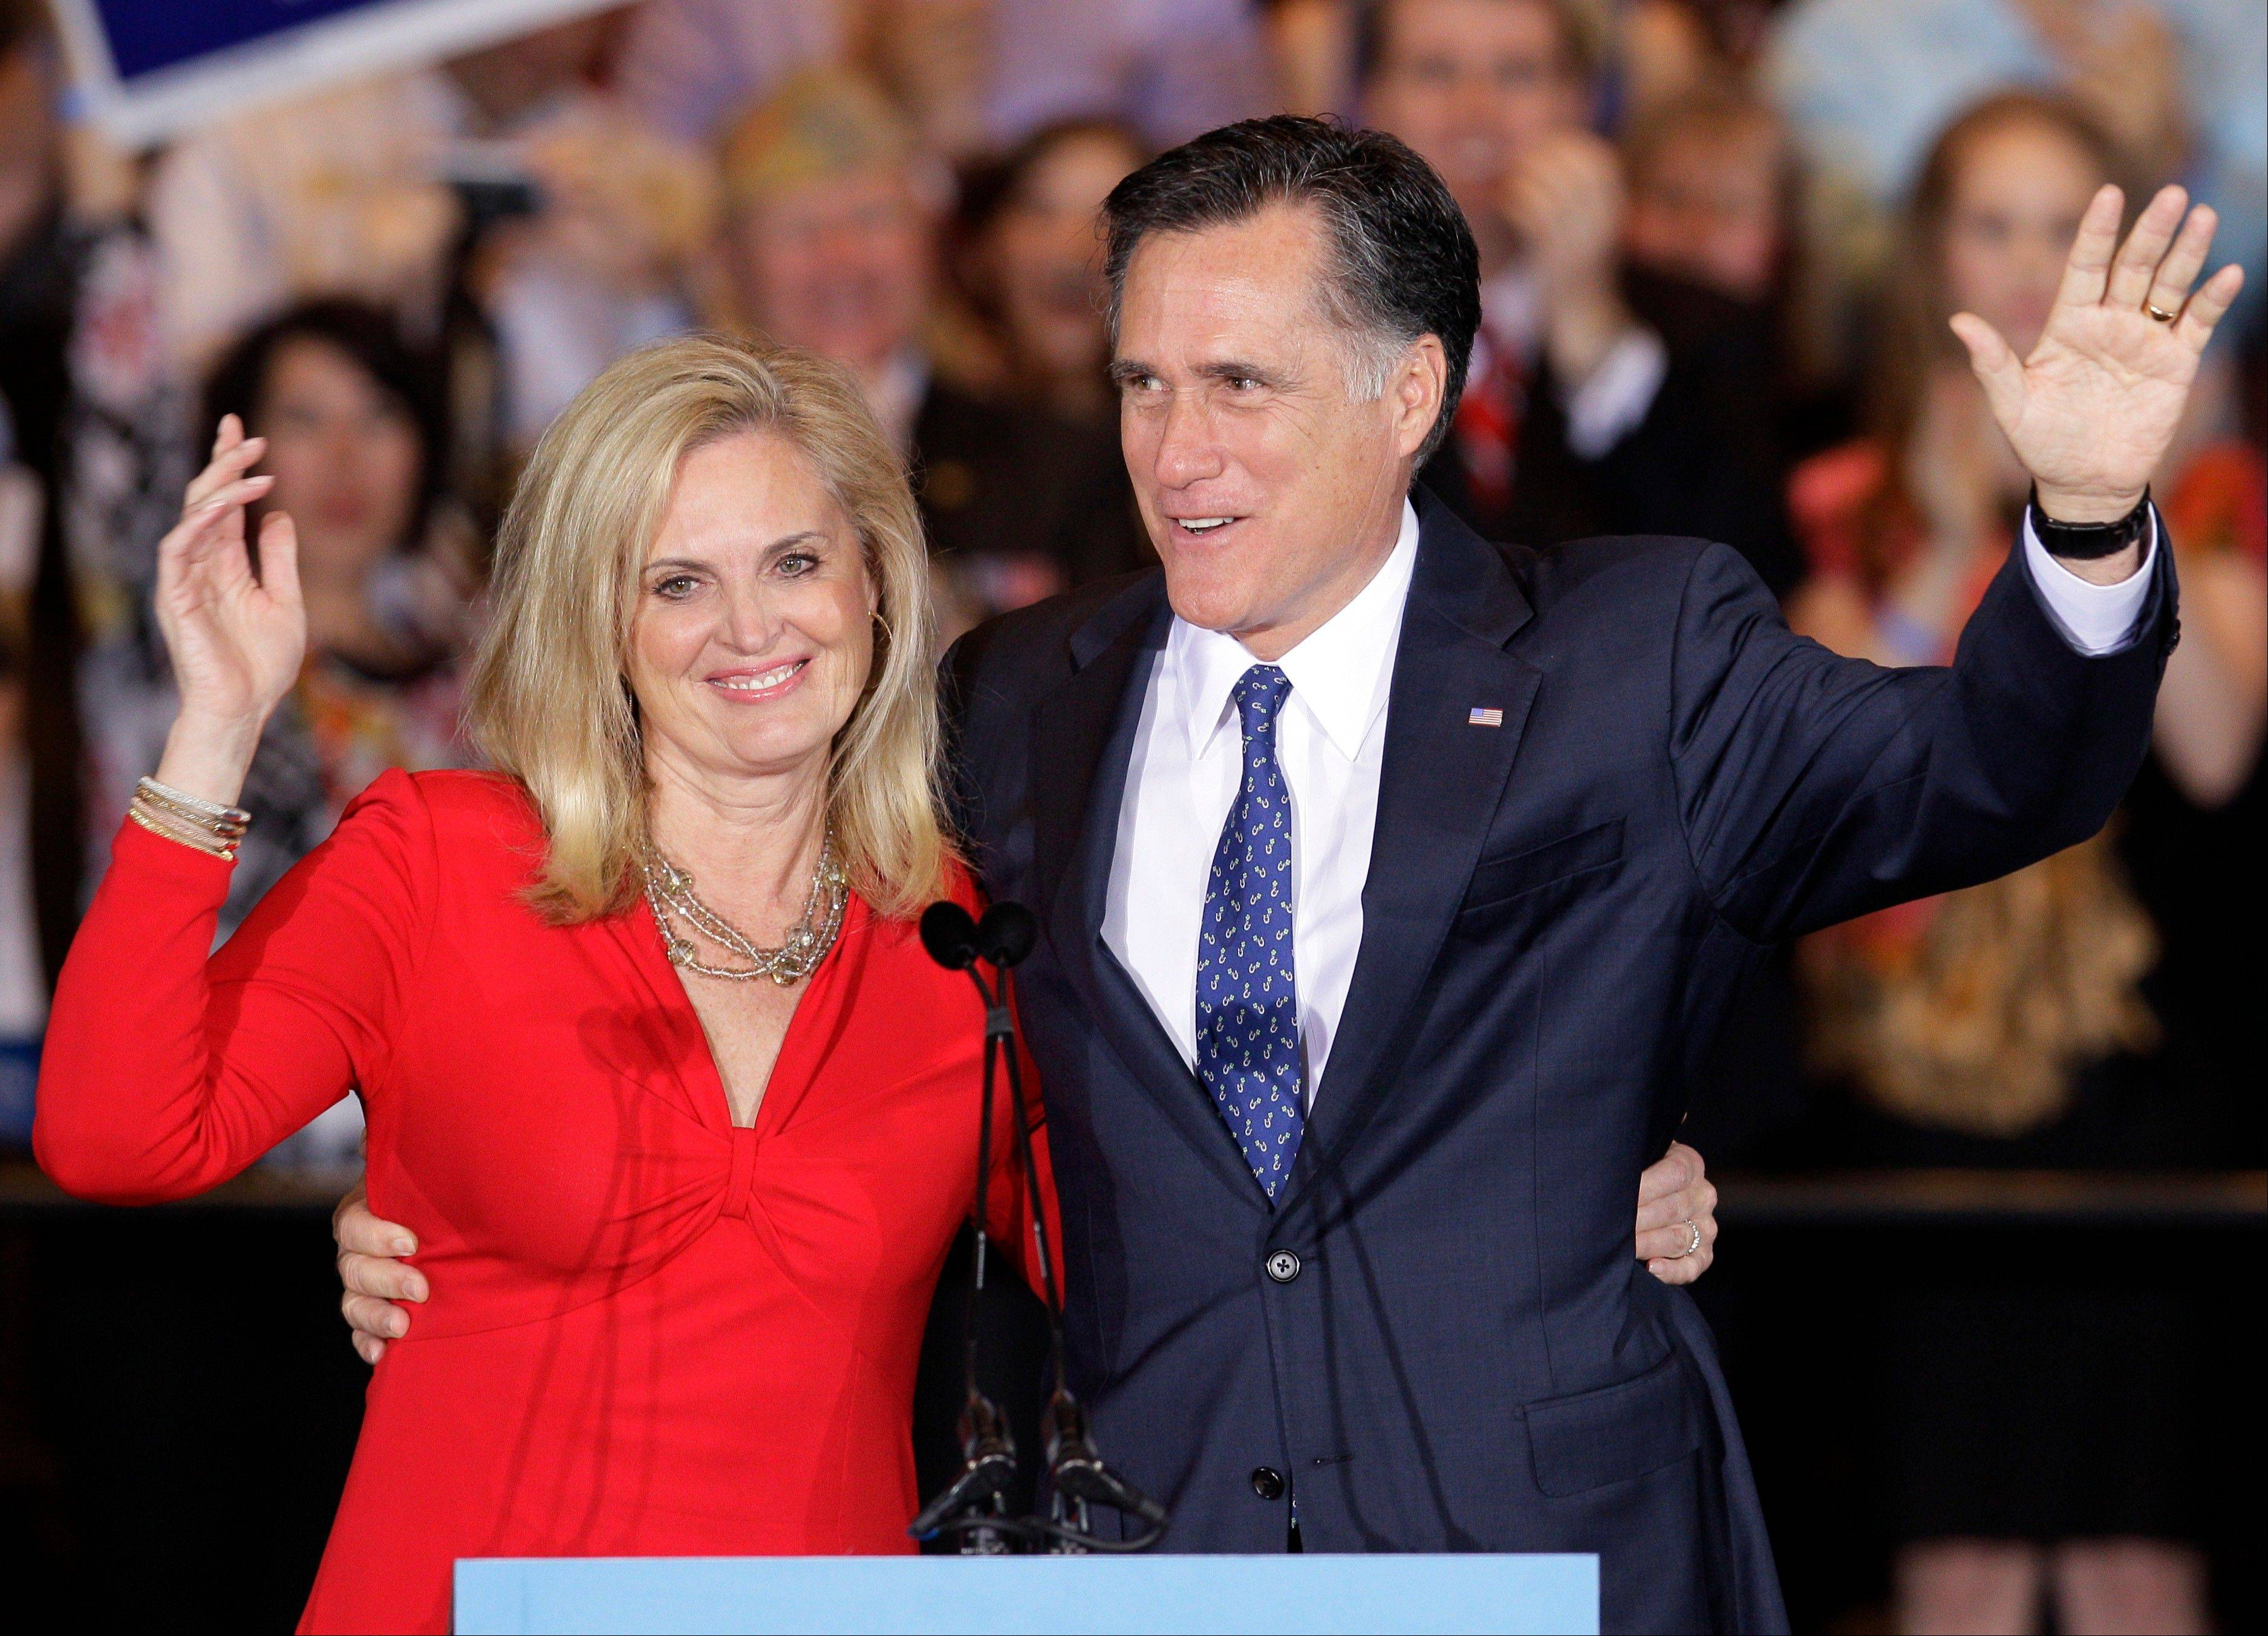 In this March 20, 2012, file photo, Republican presidential candidate, former Massachusetts Gov. Mitt Romney and his wife Ann wave as they leave at an election night rally in Schaumburg, Ill., after winning the Illinois Primary.